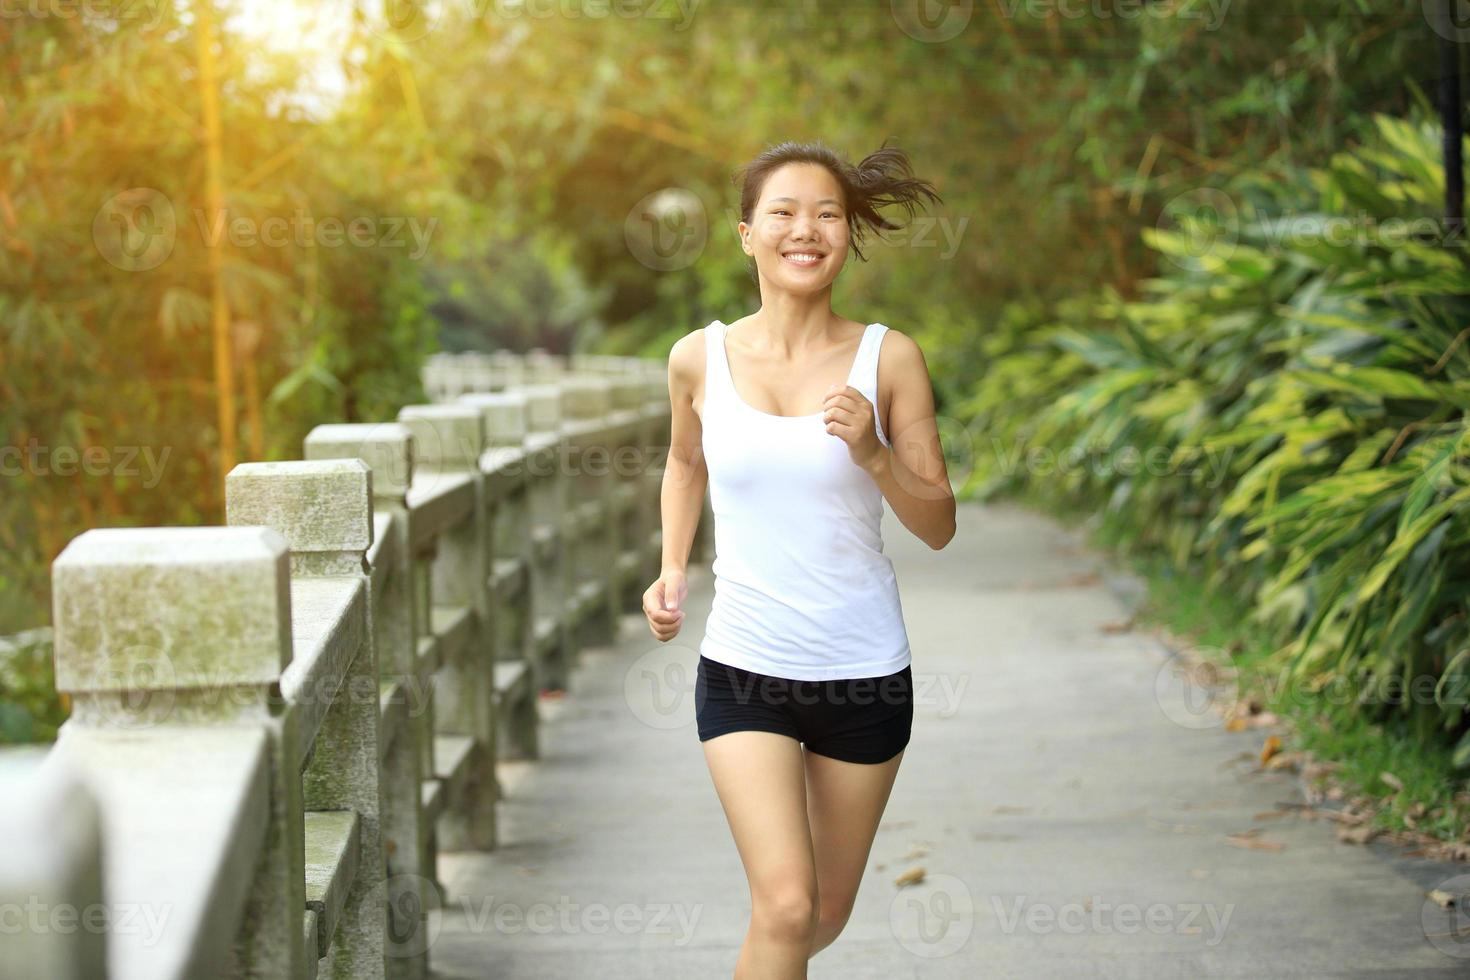 healthy lifestyle woman running photo